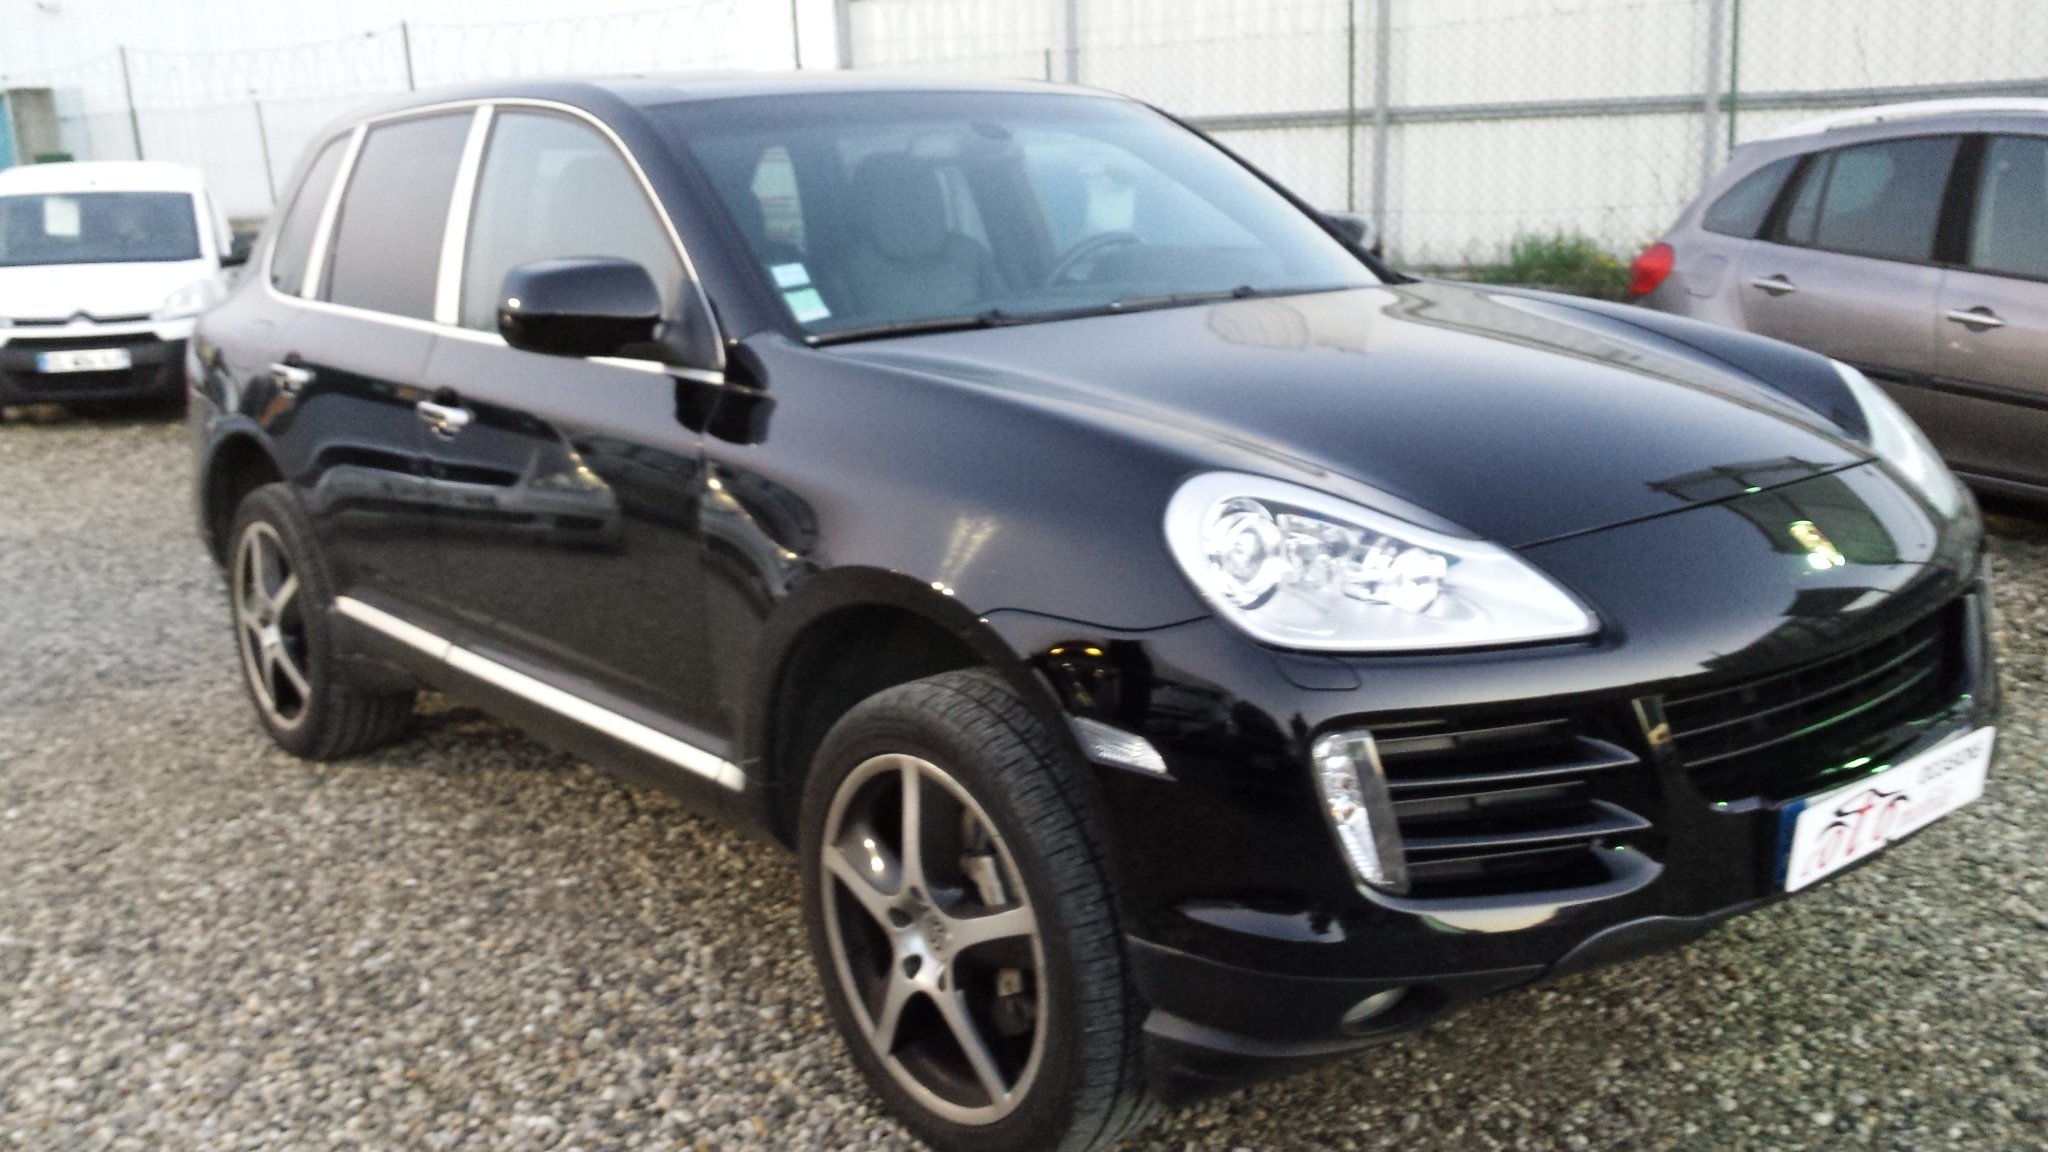 voiture porsche cayenne 4 8 v8 tiptronic 385cv occasion. Black Bedroom Furniture Sets. Home Design Ideas